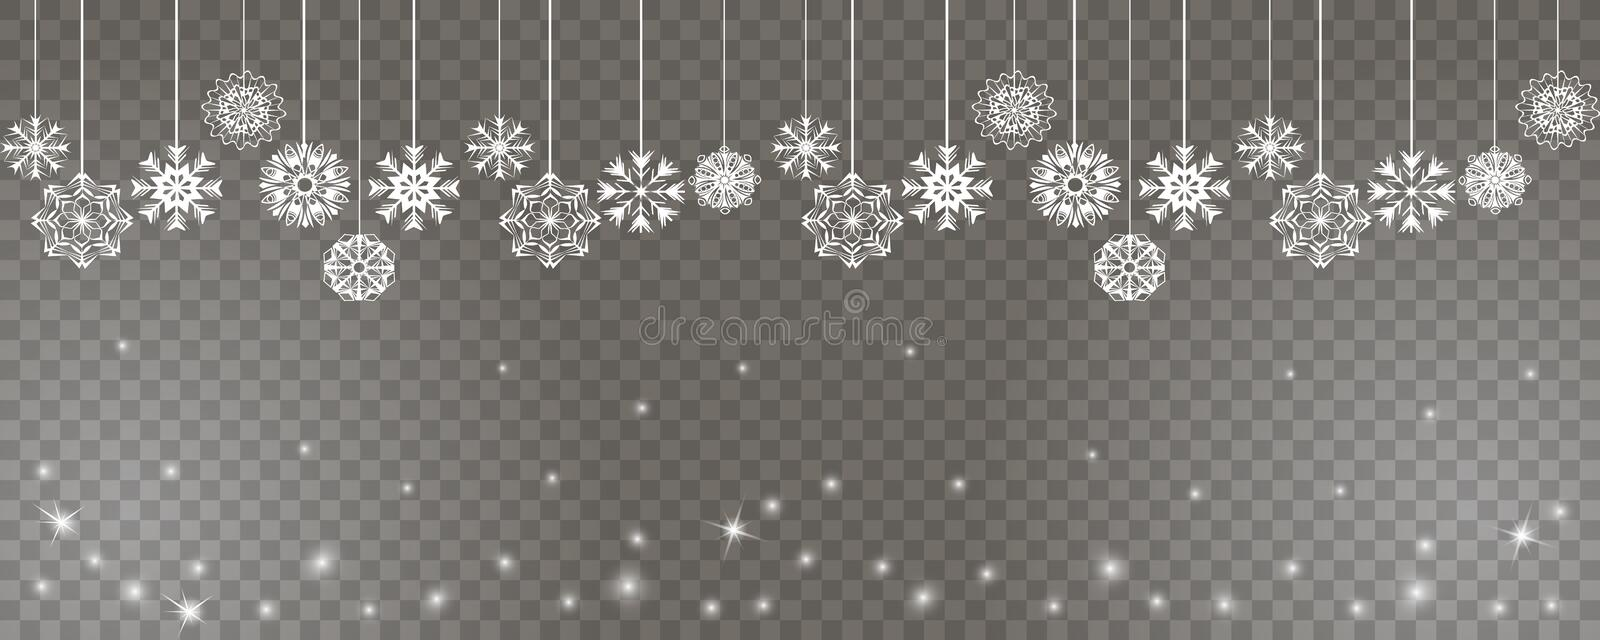 Happy new year and Merry Christmas backdrop with white snowflakes on strings on a transparent background vector illustration